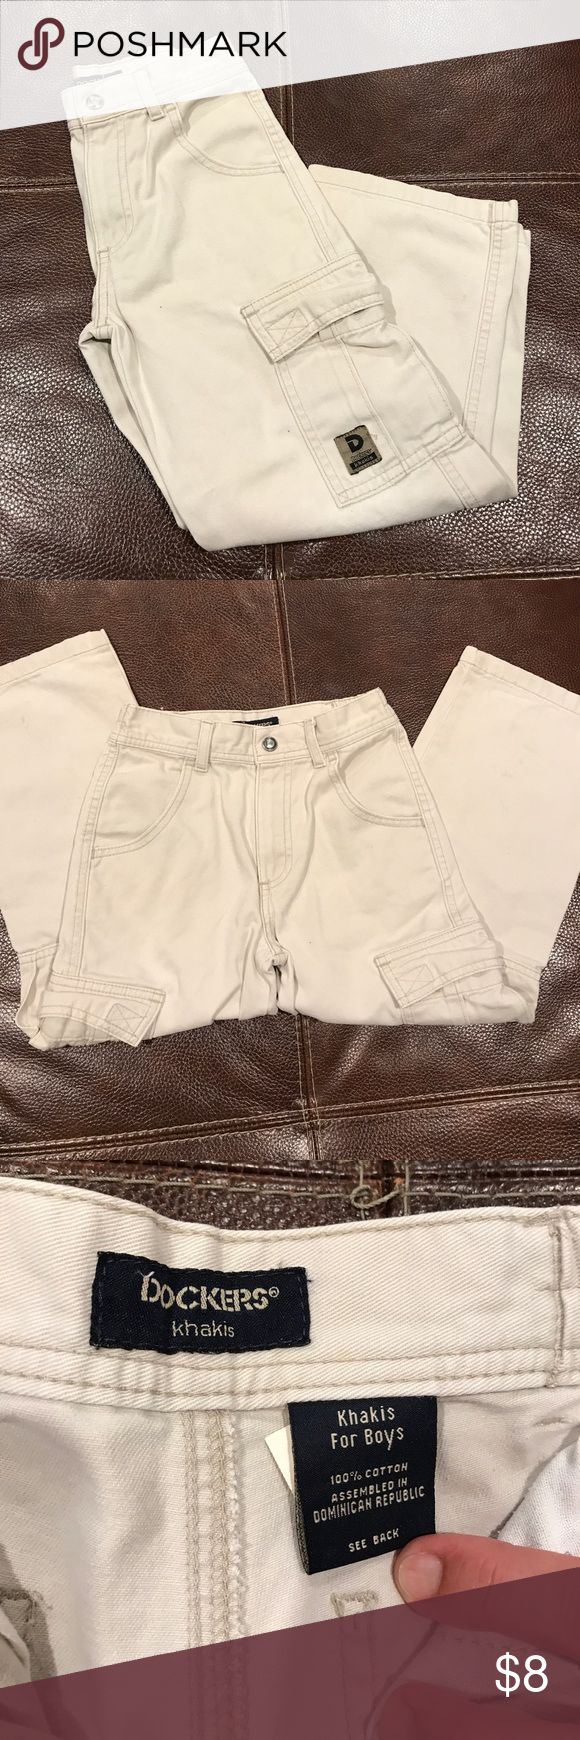 Dockers cocky pants for boys Kaki pants size 6 excellent condition Dockers Bottoms Casual